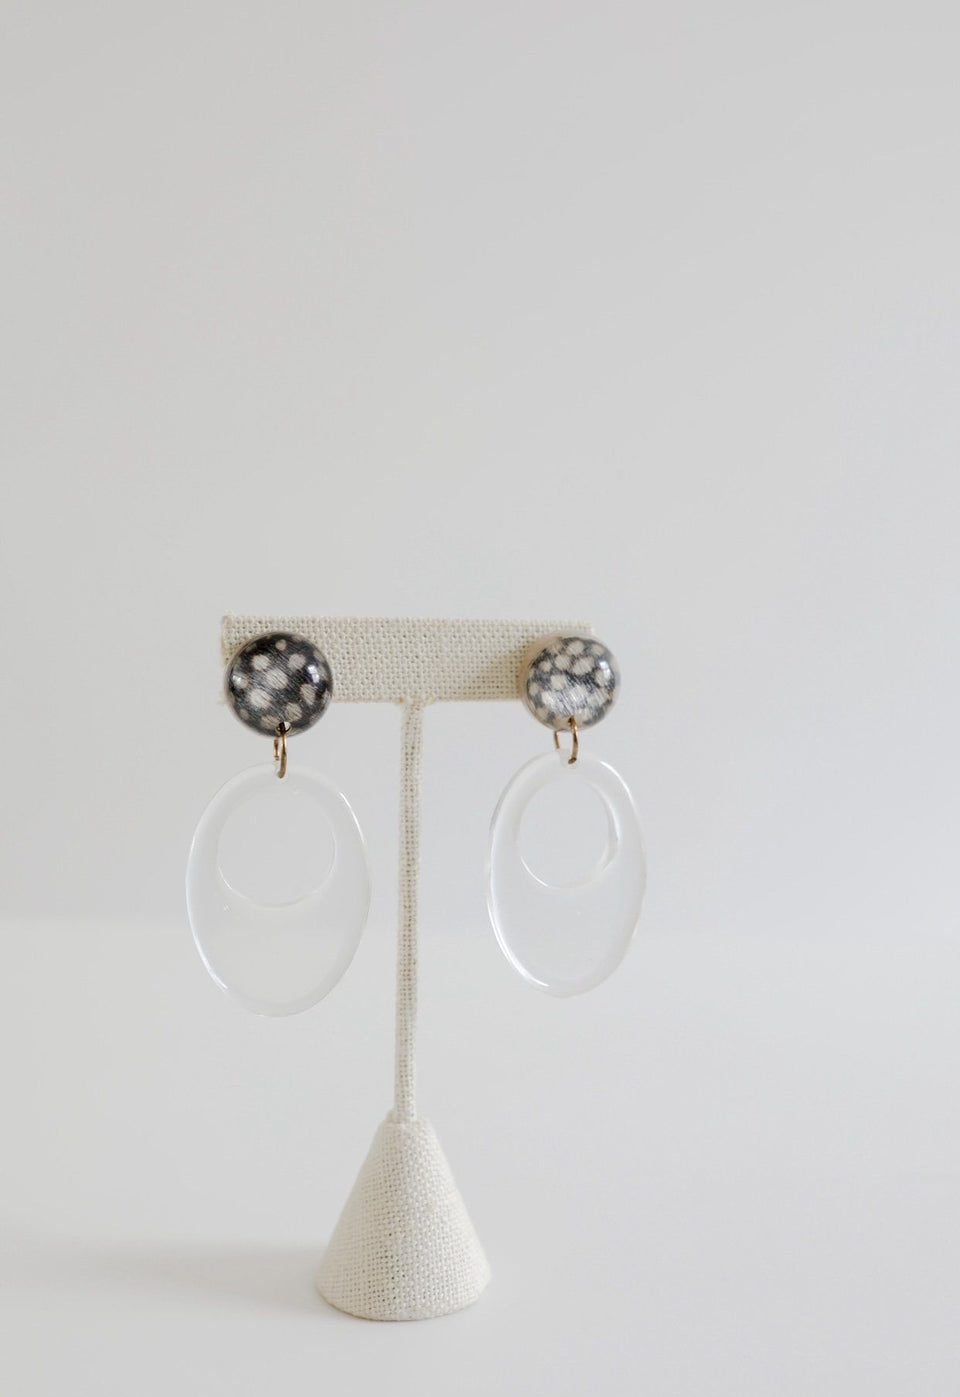 Animal Print & Clear Dangle Earrings